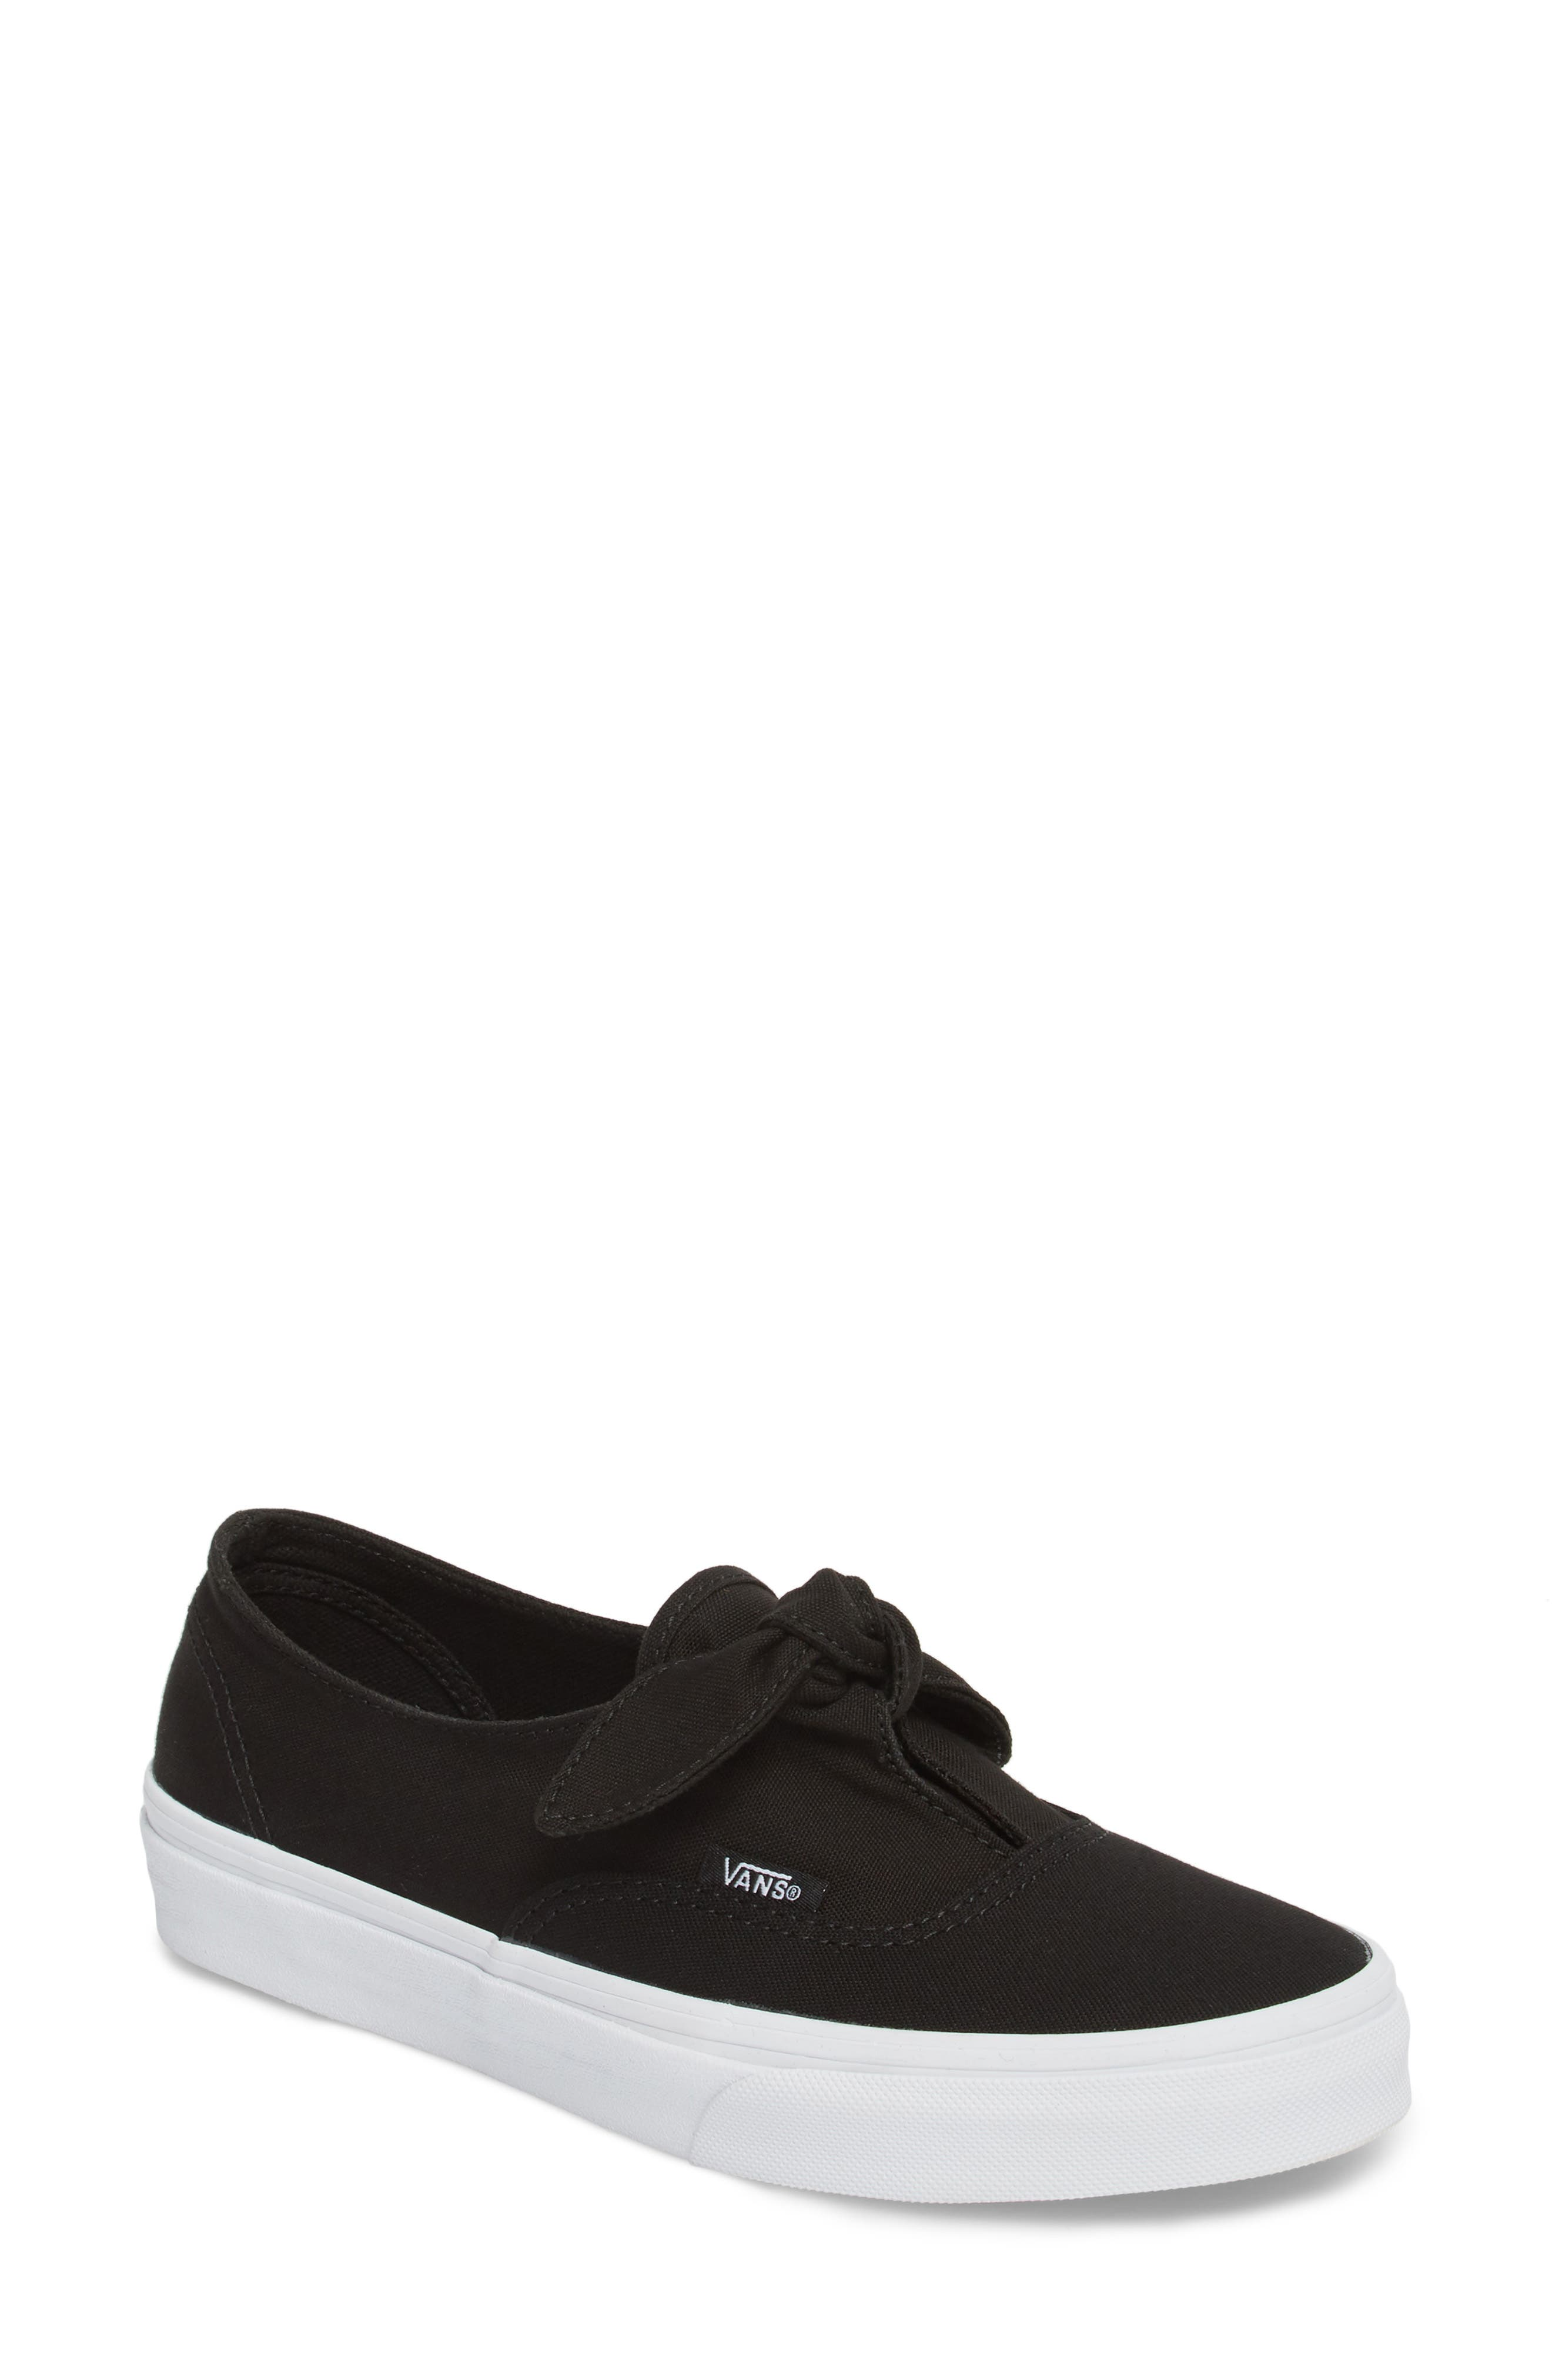 Alternate Image 1 Selected - Vans UA Authentic Knotted Slip-On Sneaker (Women)